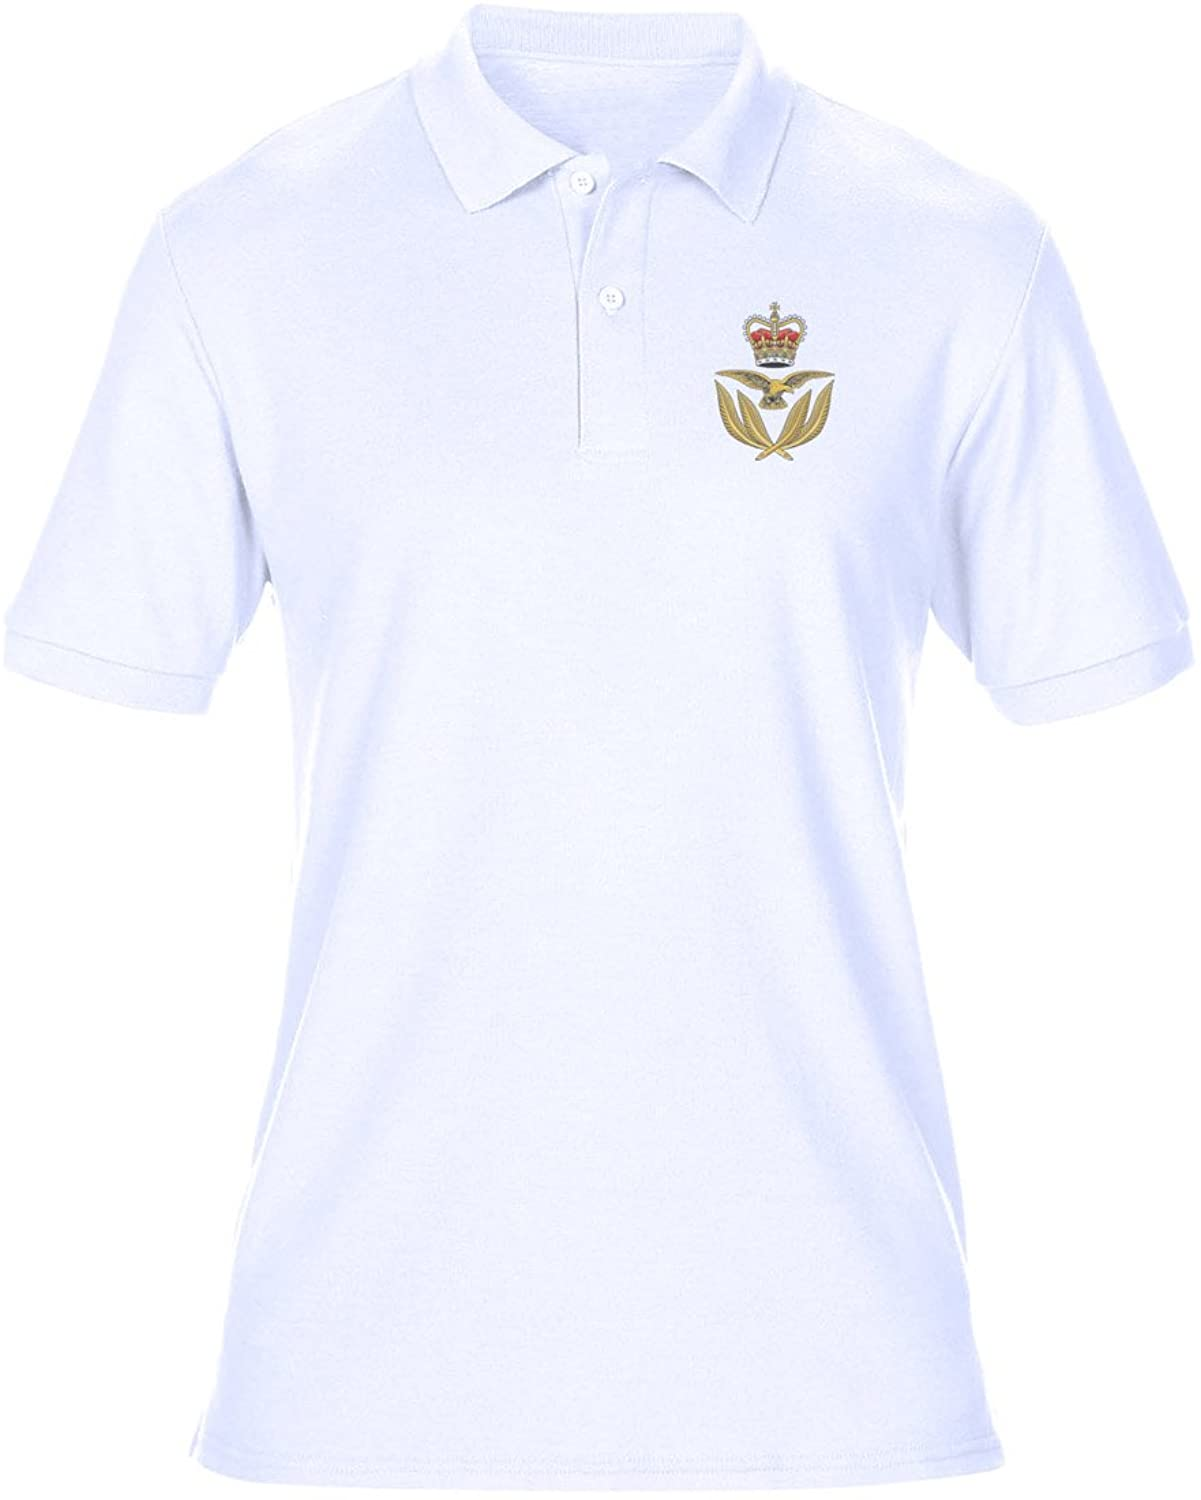 RAF Royal Air Force Warrant Officer T Shirt